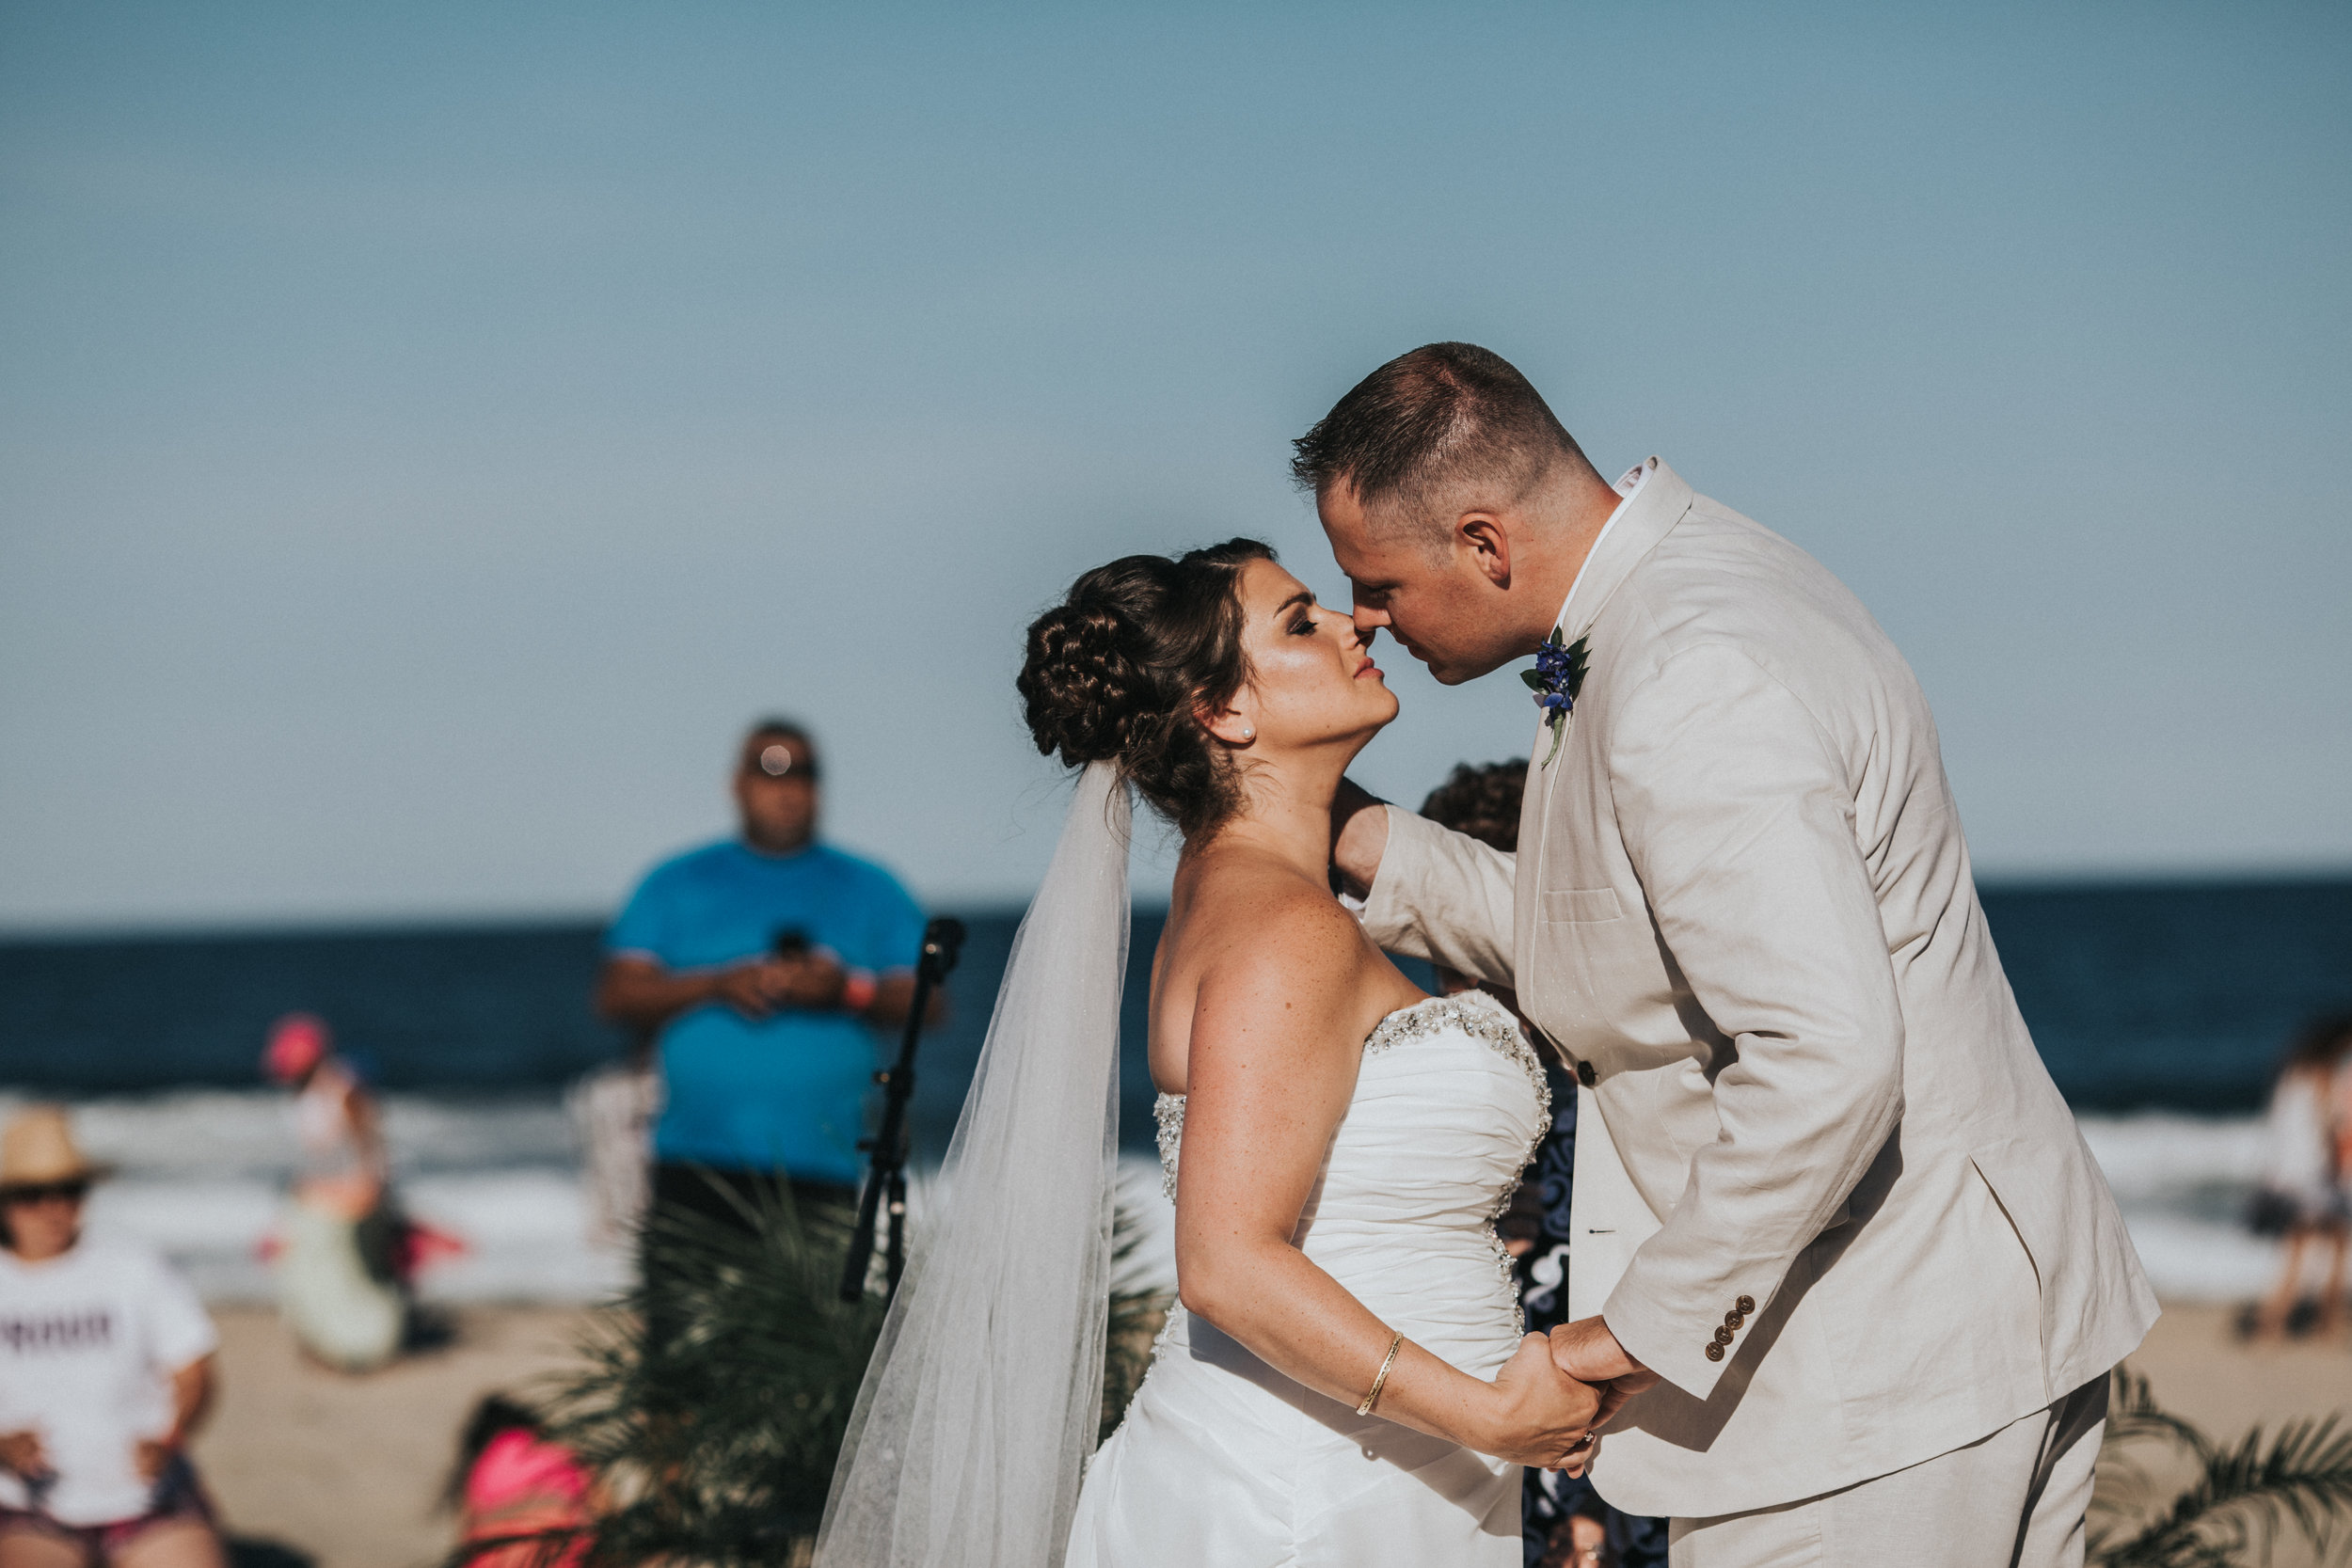 JennaLynnPhotography-NJWeddingPhotographer-Wedding-TheBerkeley-AsburyPark-Allison&Michael-Ceremony-36.jpg